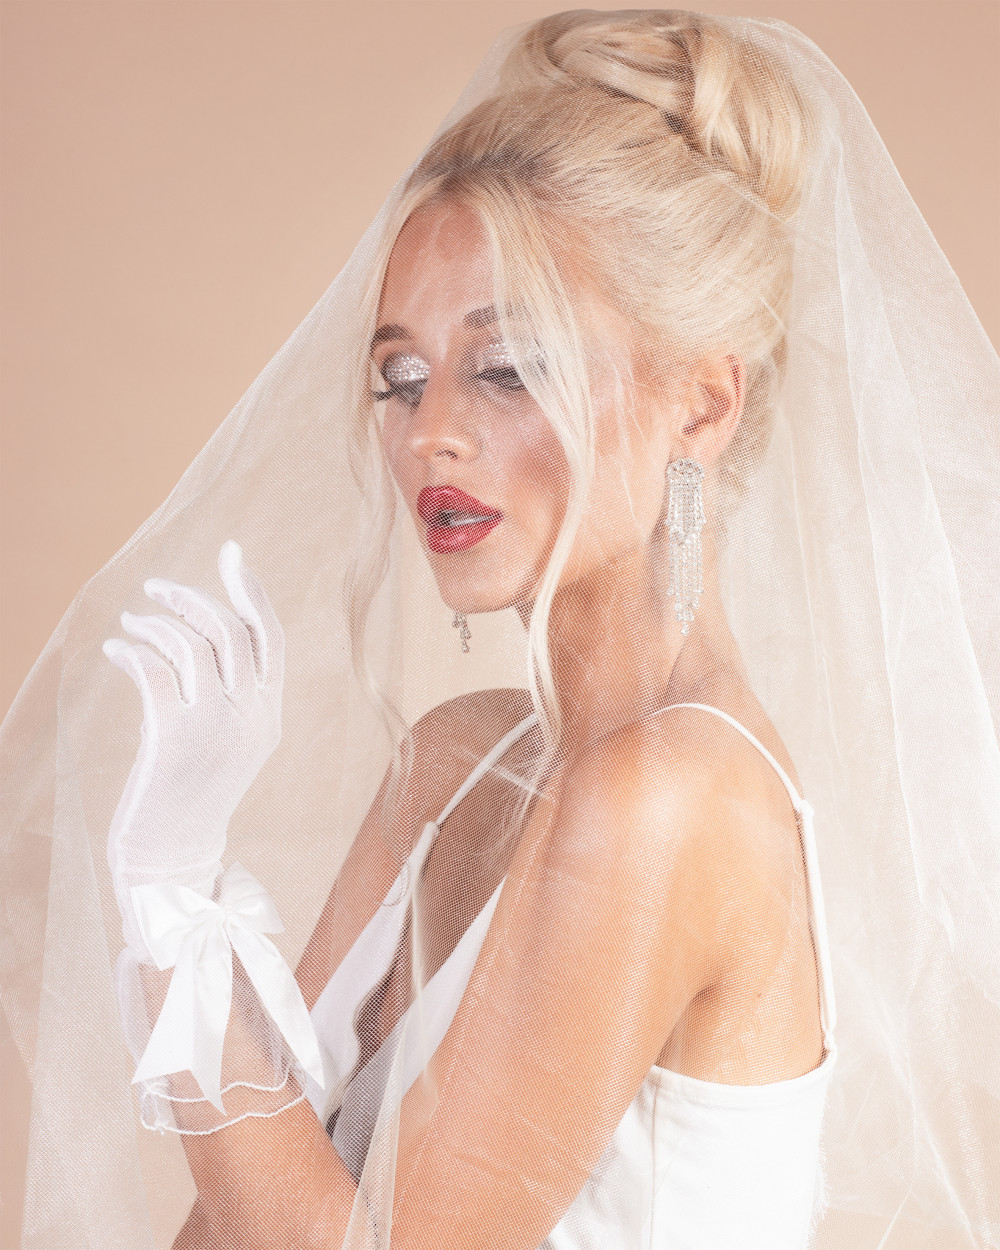 For the ever glamorous and editorial Bride.  Makeup by me Hair by Nicola  Www.bespokebridalhair.co.uk - Make Me Bridal Artist: Rosie Cerosio Makeup. Photography by: Jasmine Boulton. #glamorous #editorial